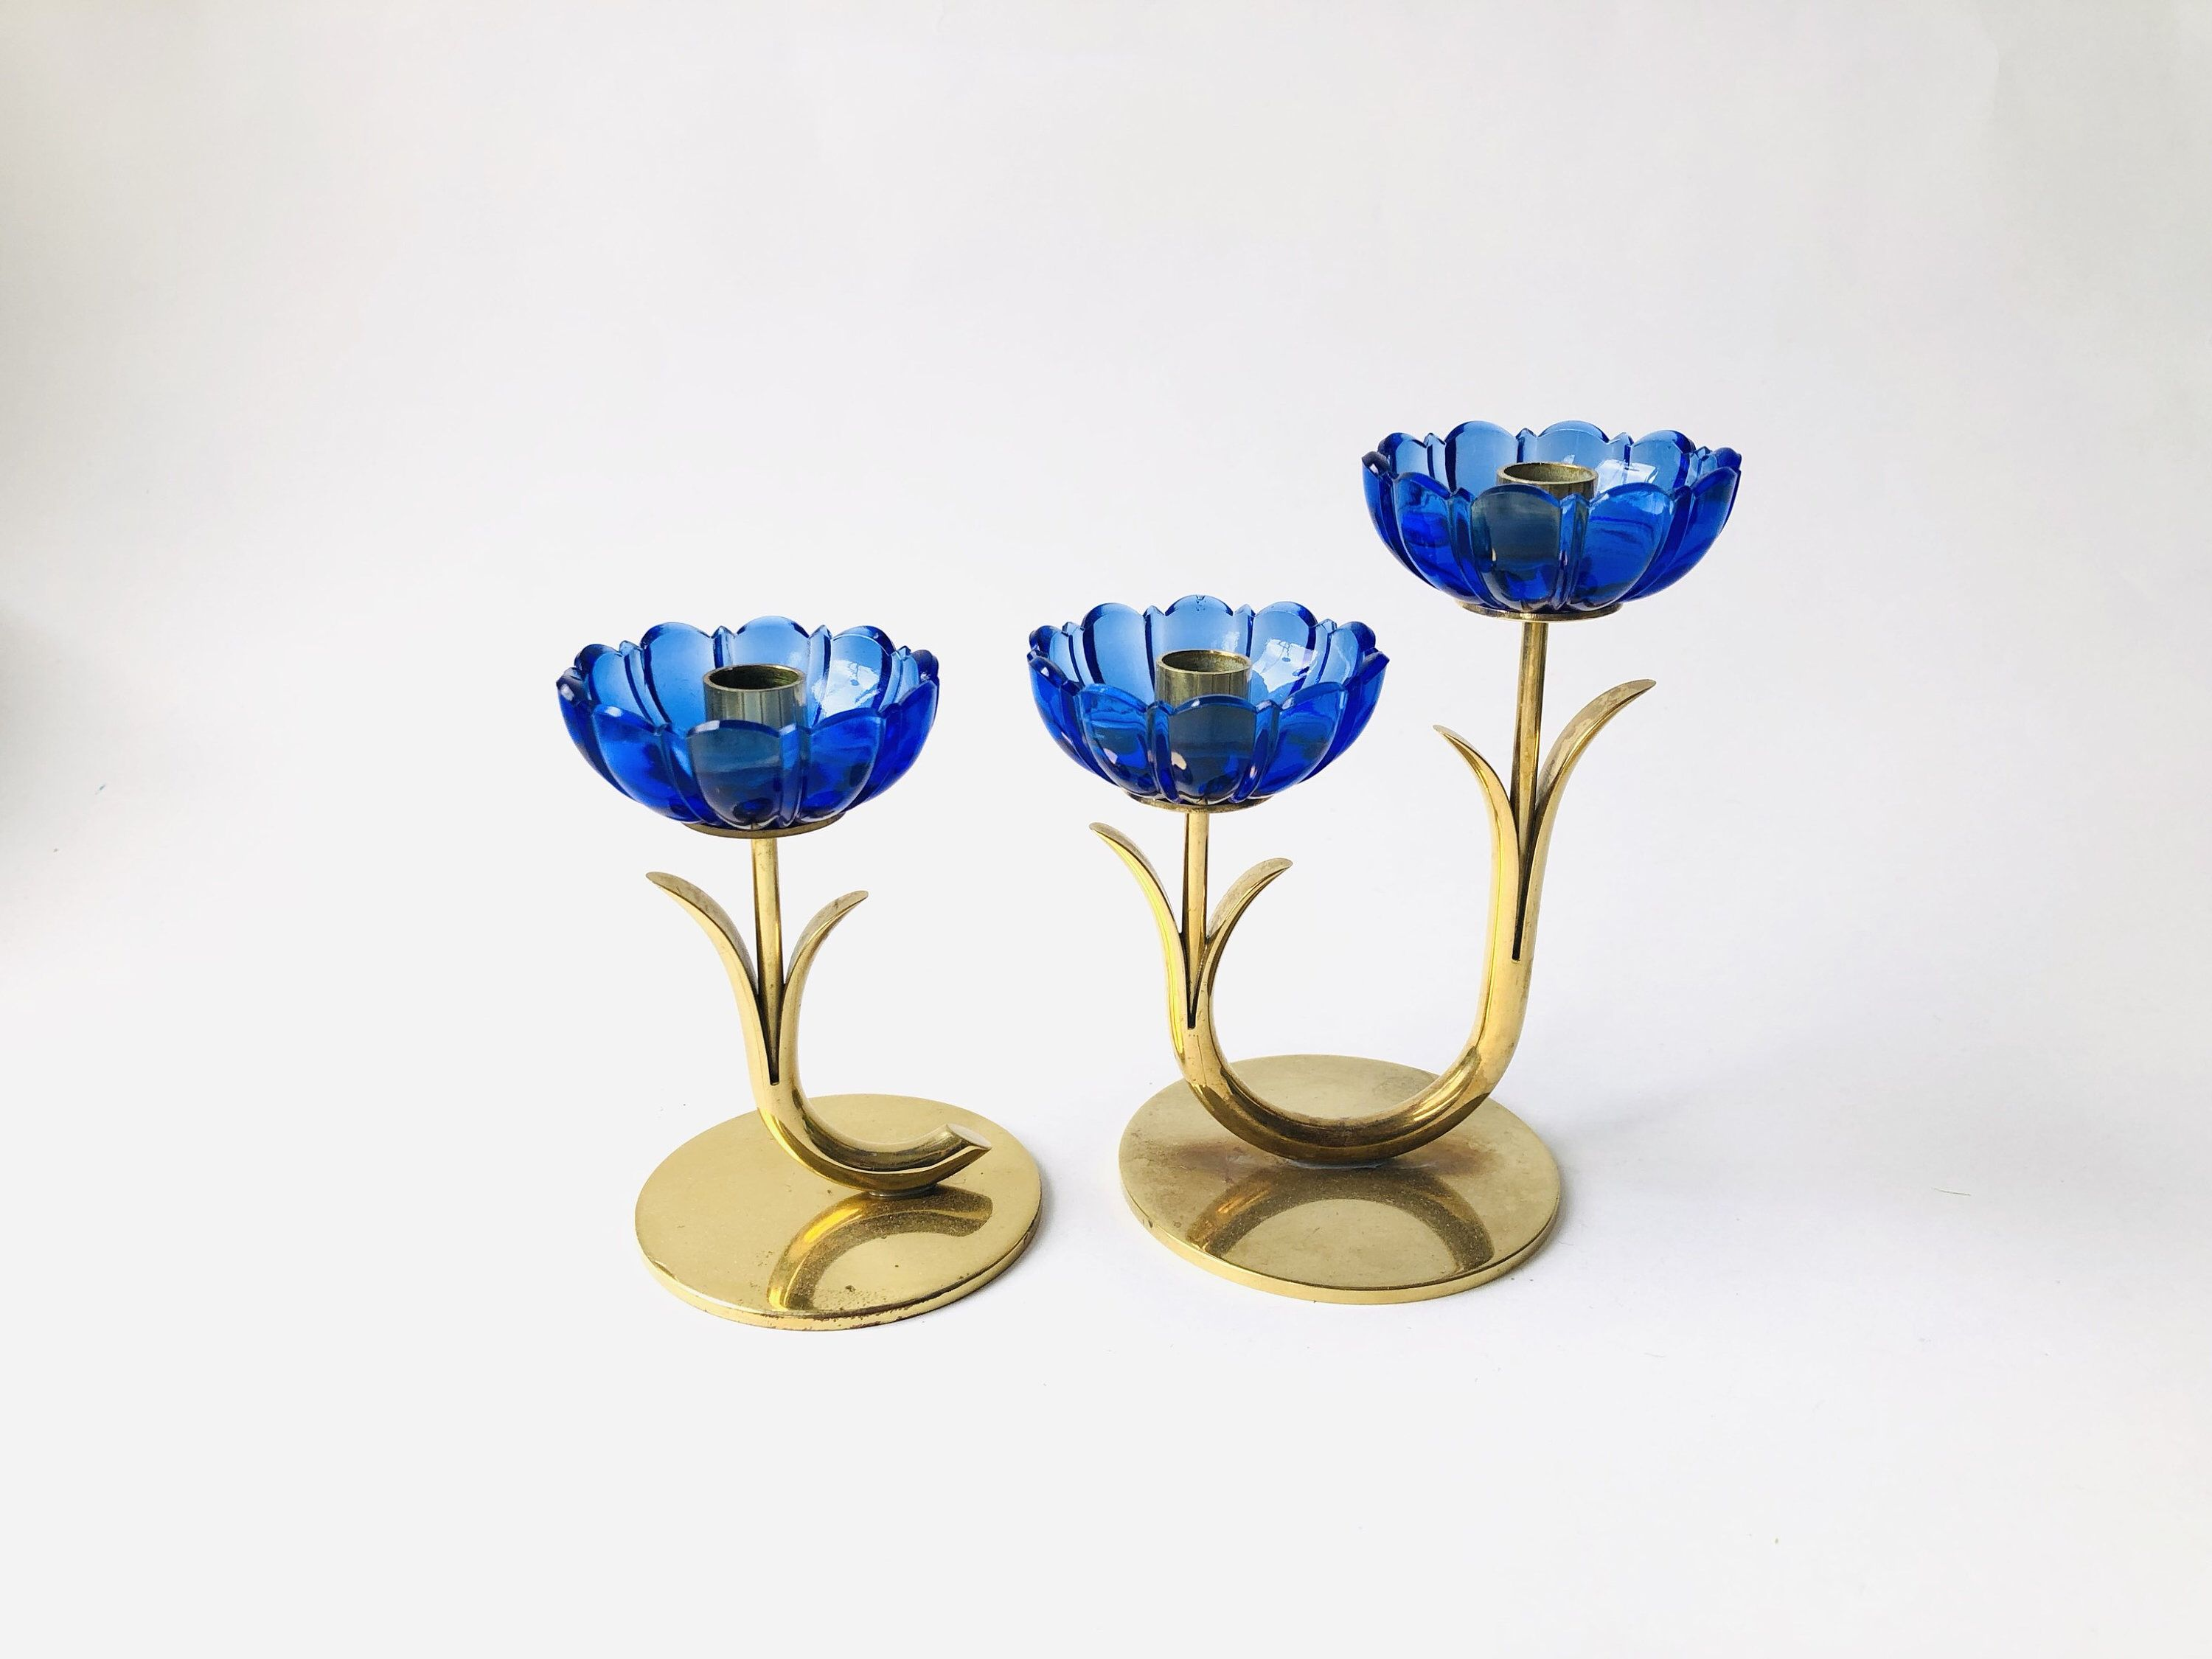 Scandinavian Candle Holder Lily Brass And Blue Clear Glass Etsy Scandinavian Candle Holders Candlesticks Modern Candle Holders